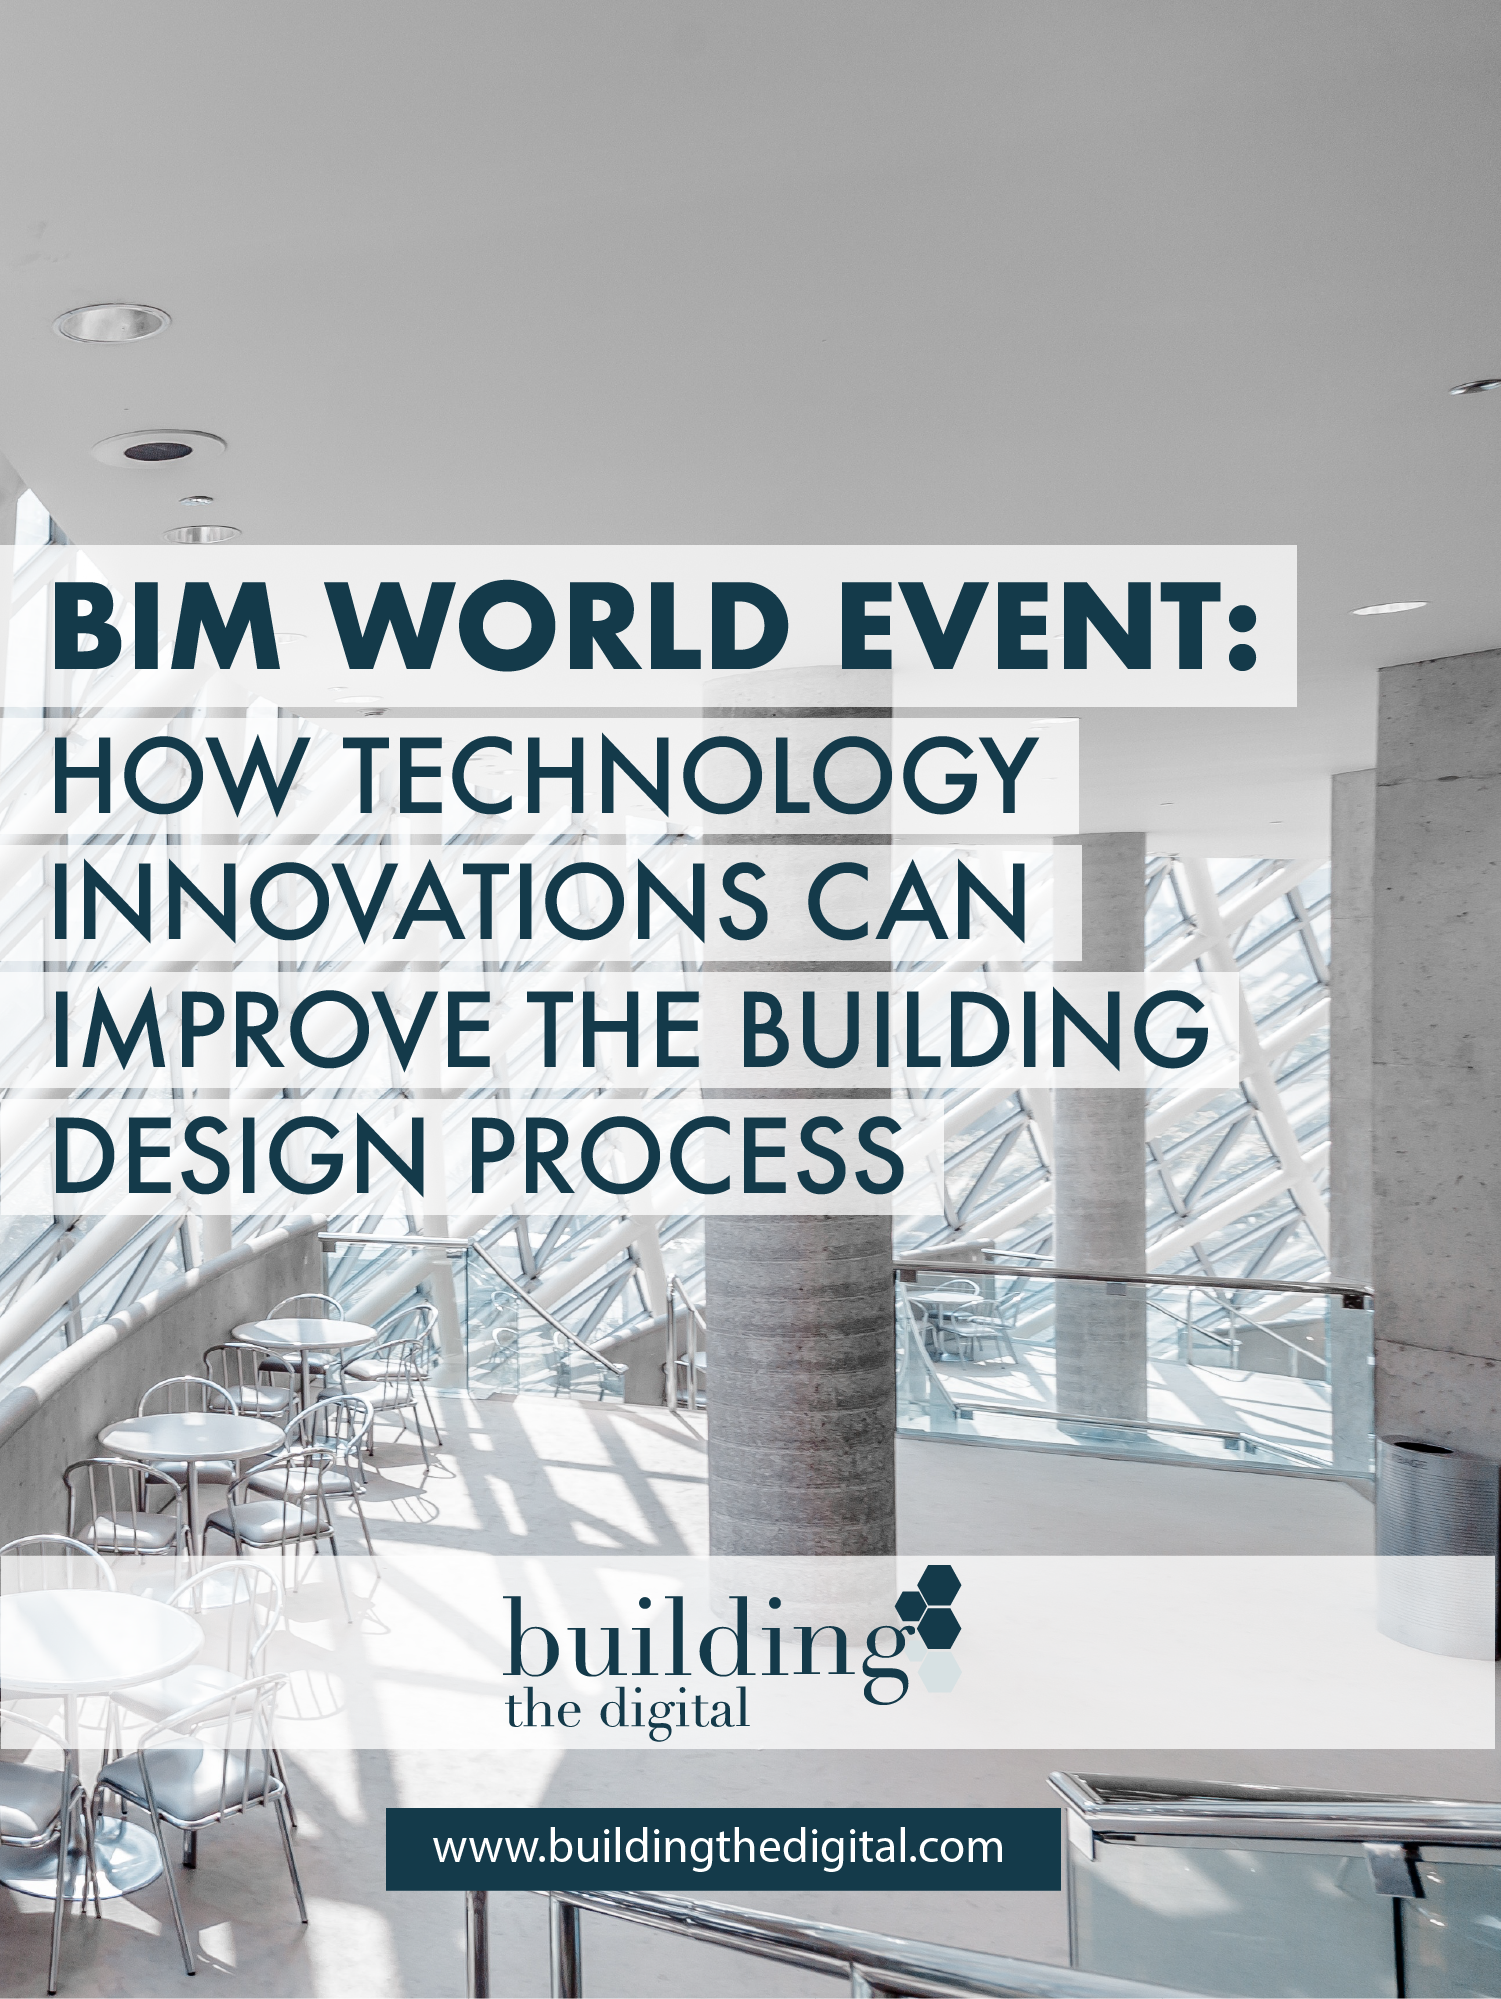 BIM WORLD EVENT: How technology innovations are improving the building design process, check article at www.buildingthedigital.com/blog/building-design-process